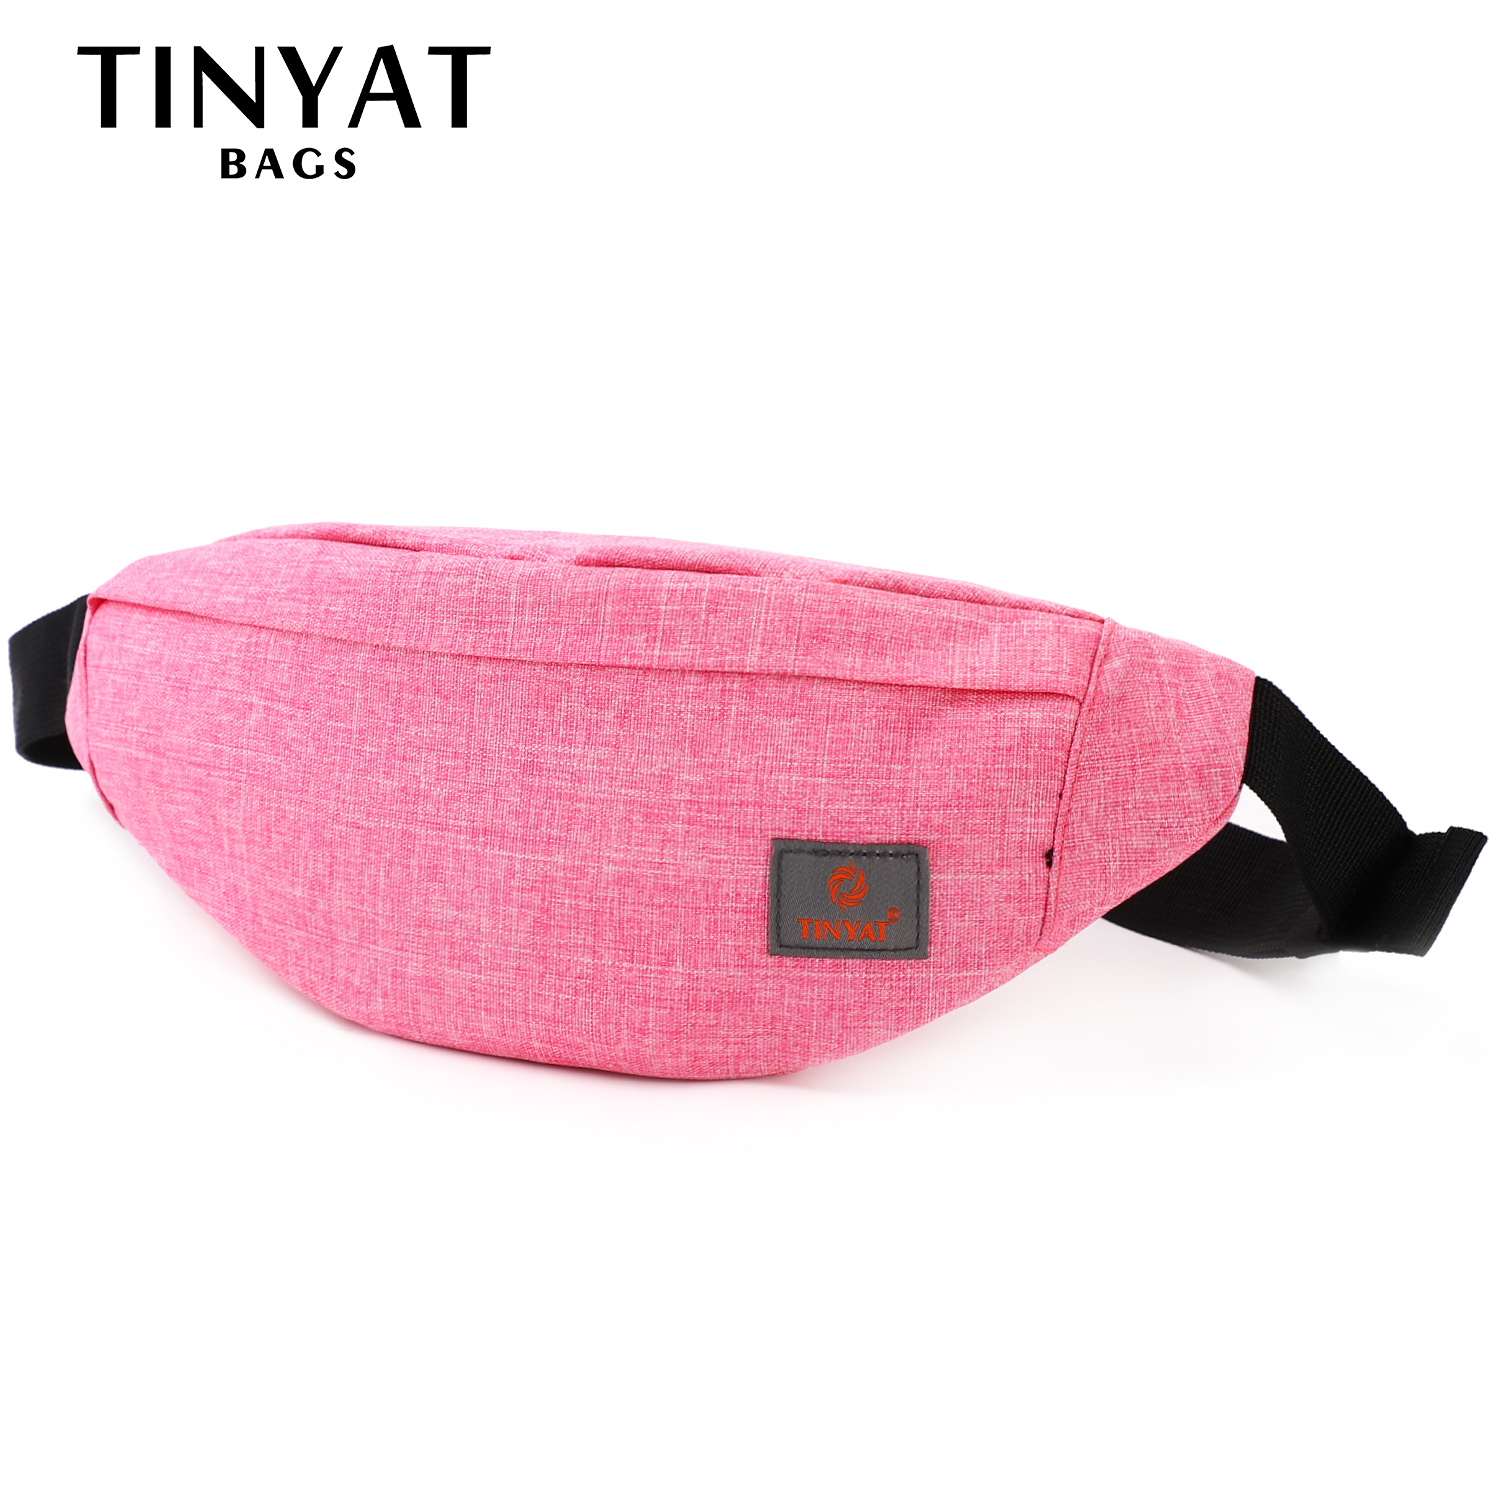 TINYAT Women Waist Bag Female Belt Bag Pack Girl Canvas Casual Fanny Pack Phone Mobile Money Fanny Bag Belt Bags Red(China)